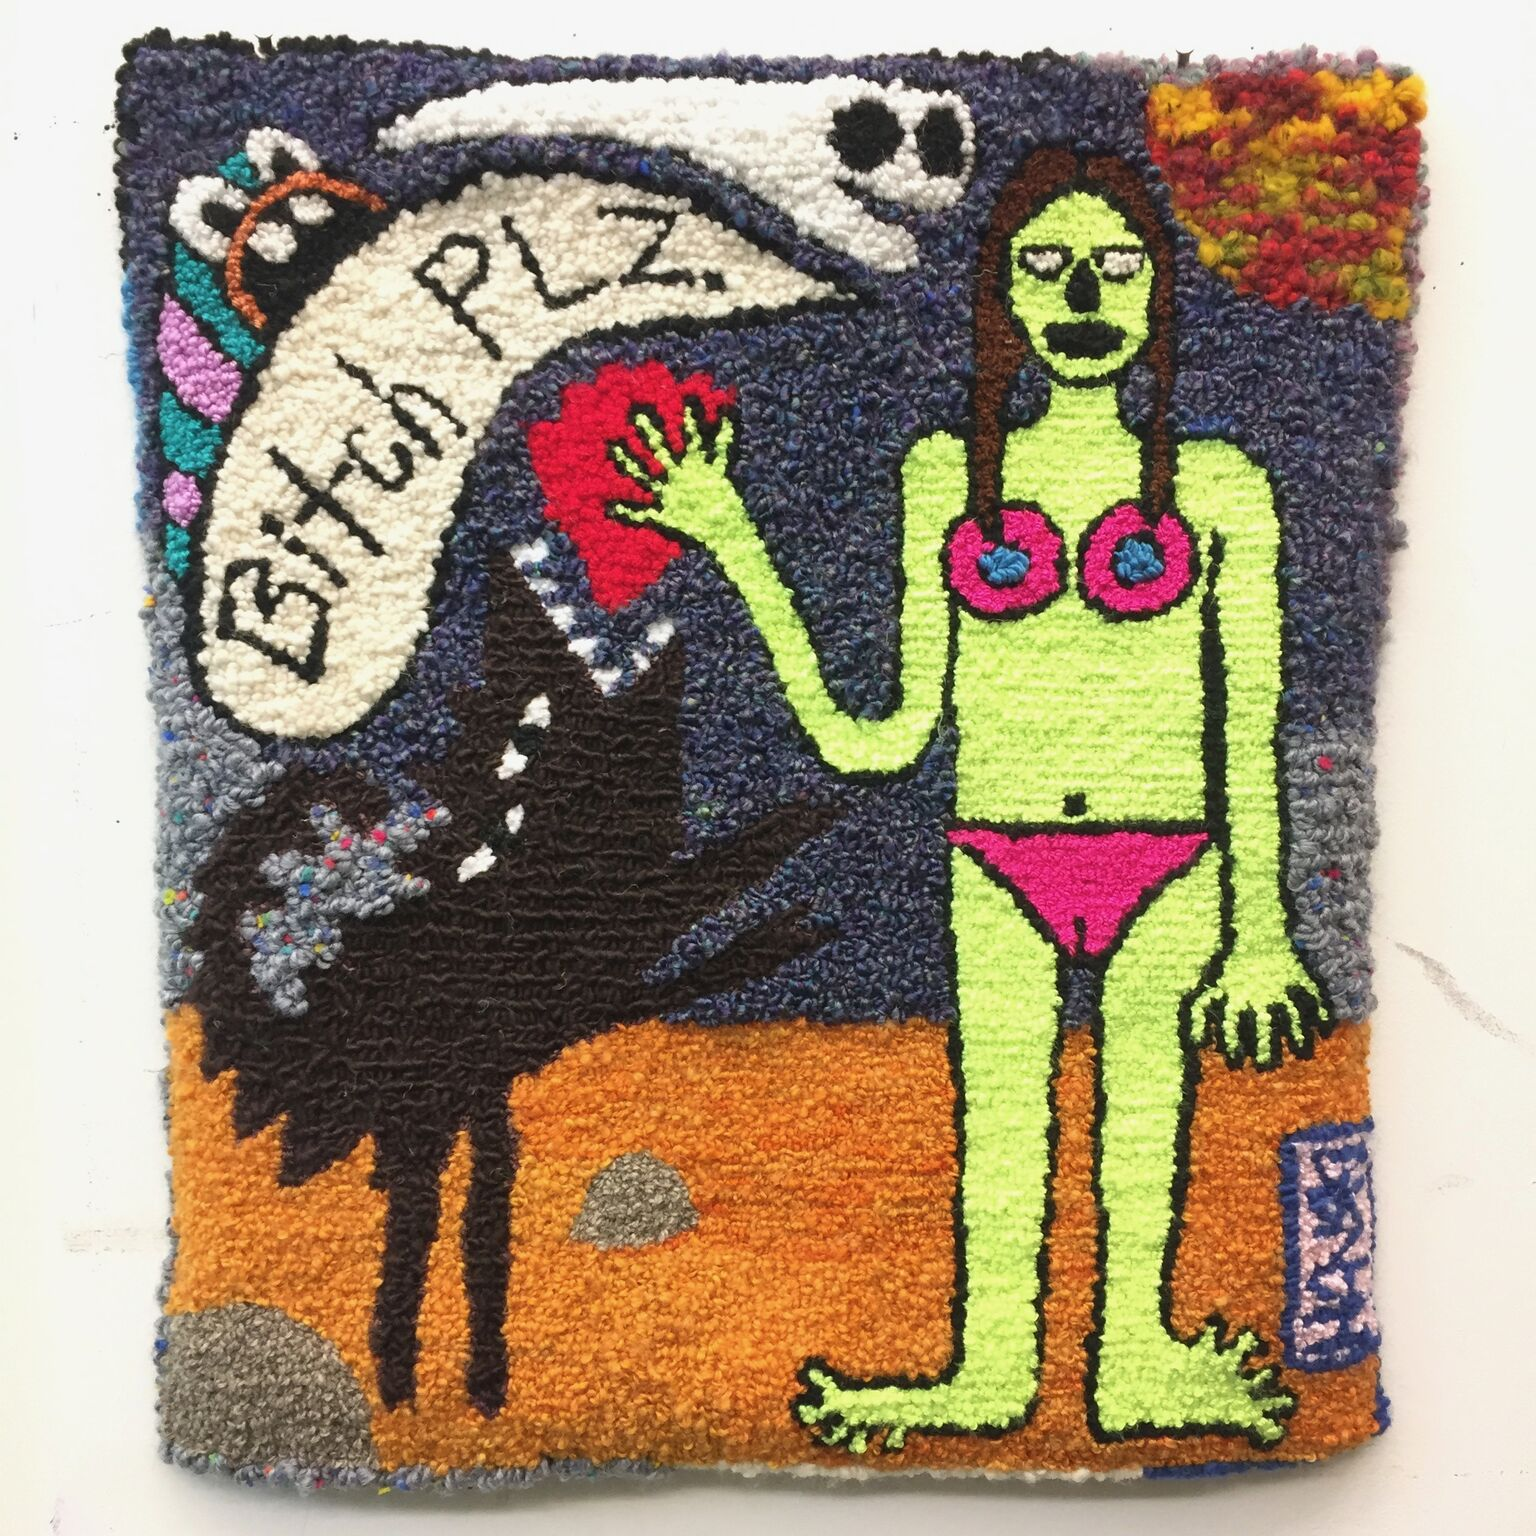 bitch PLZ  wool, acrylic, burlap  dimensions not recorded  2015